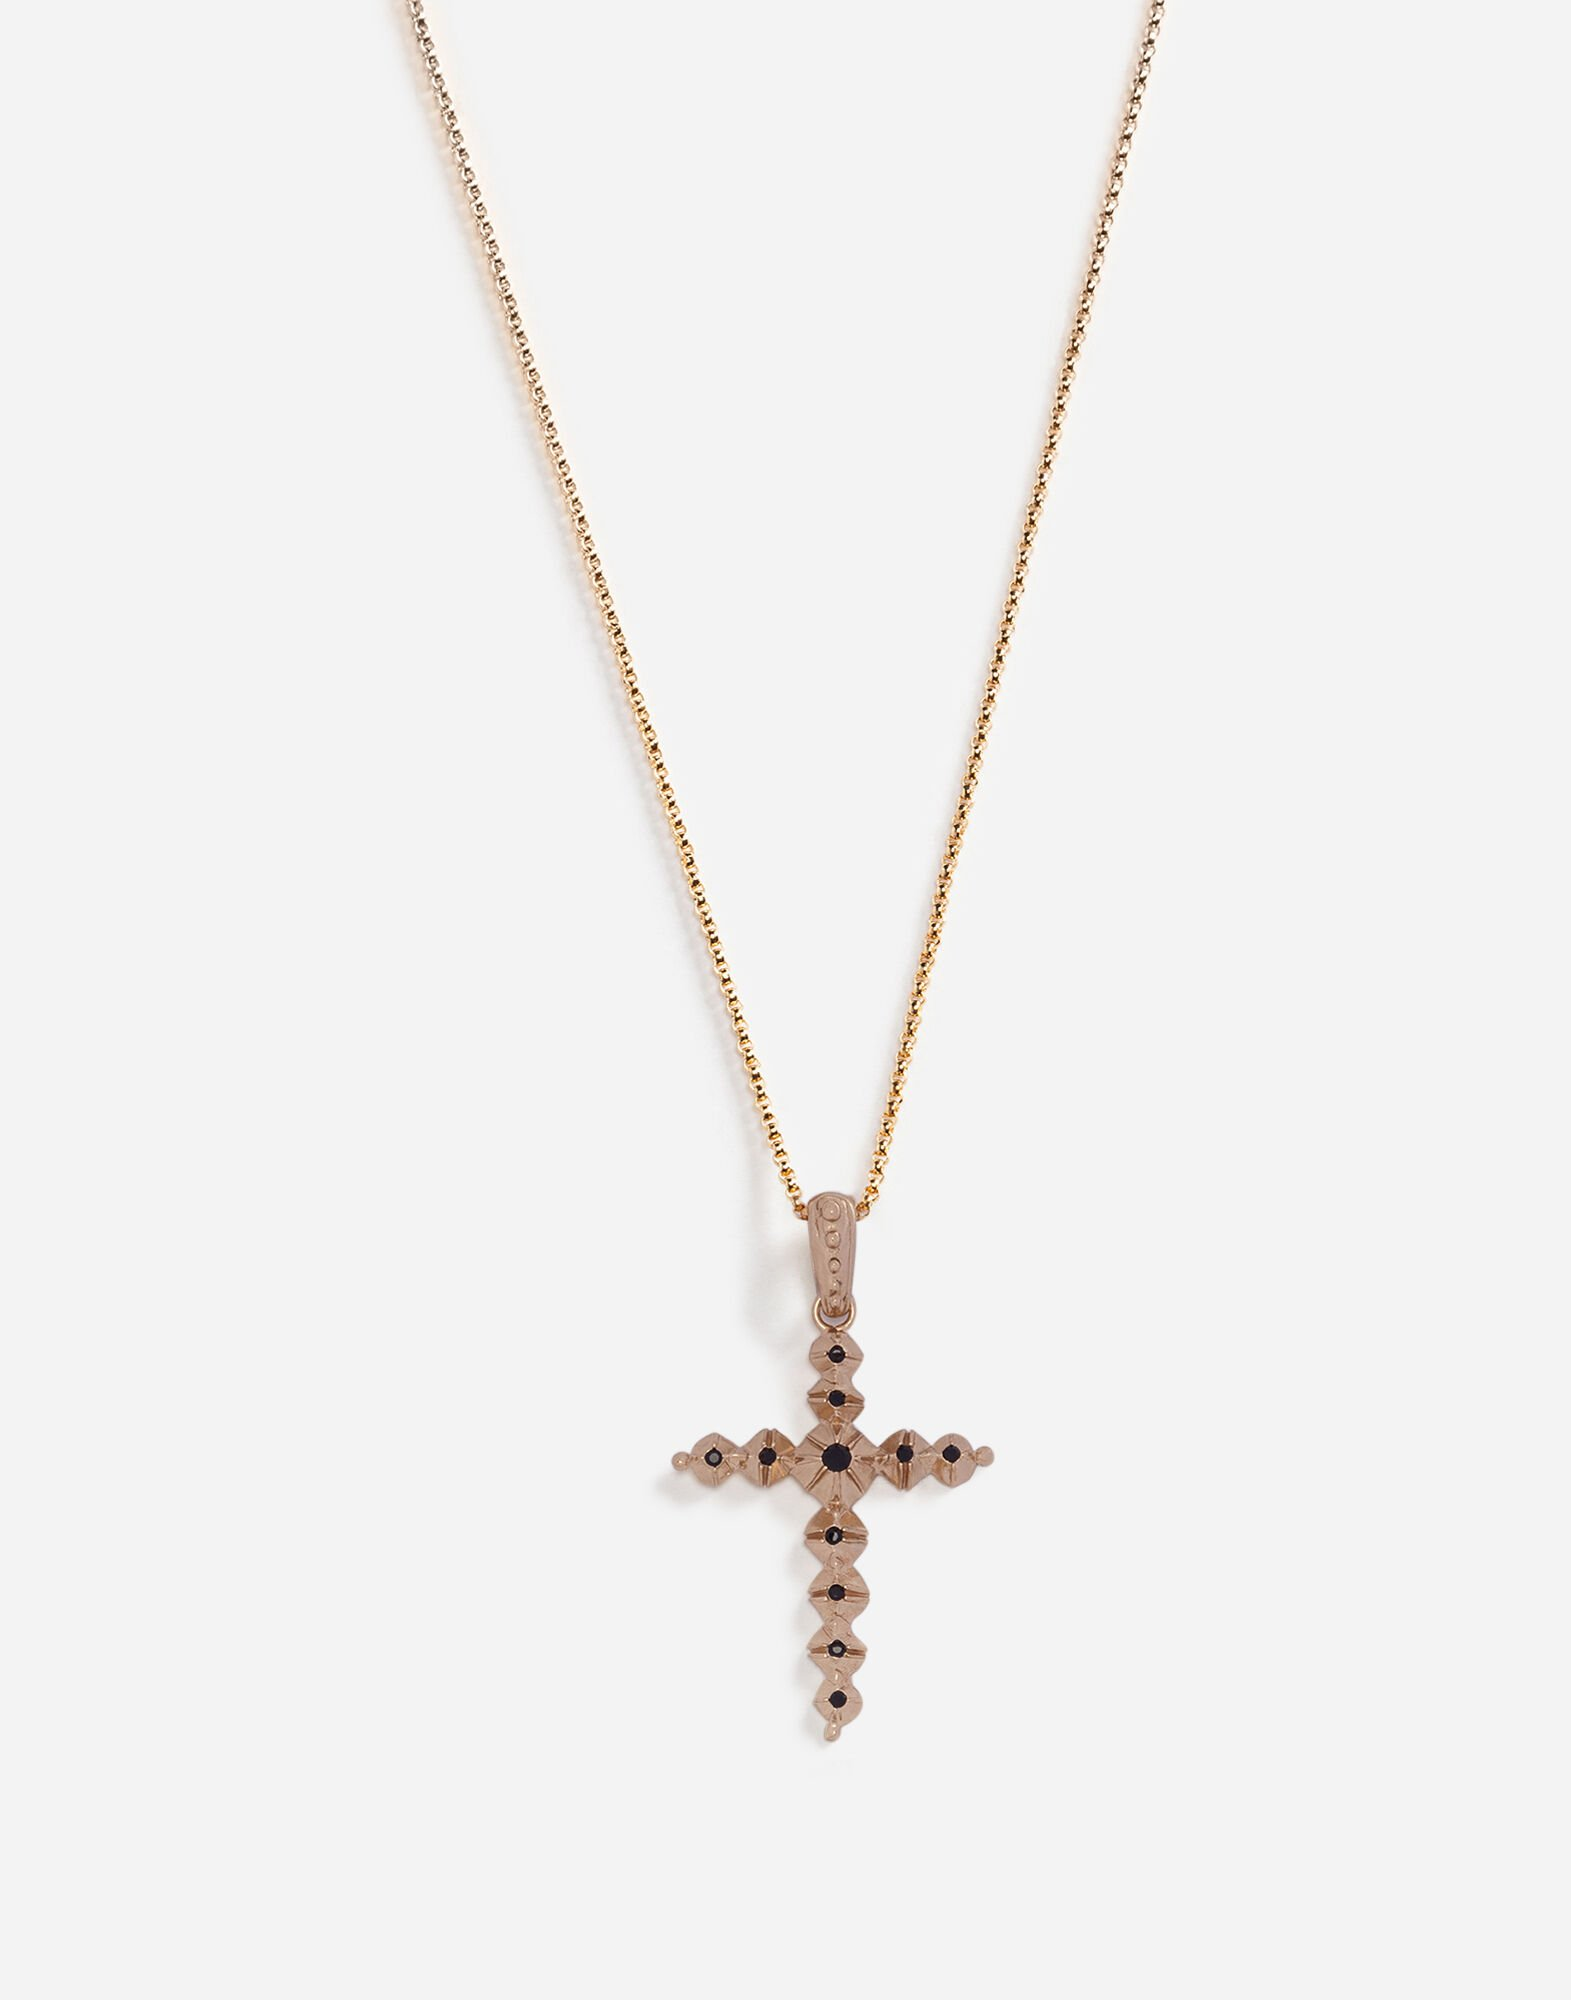 NECKLACE WITH CROSS PENDANT